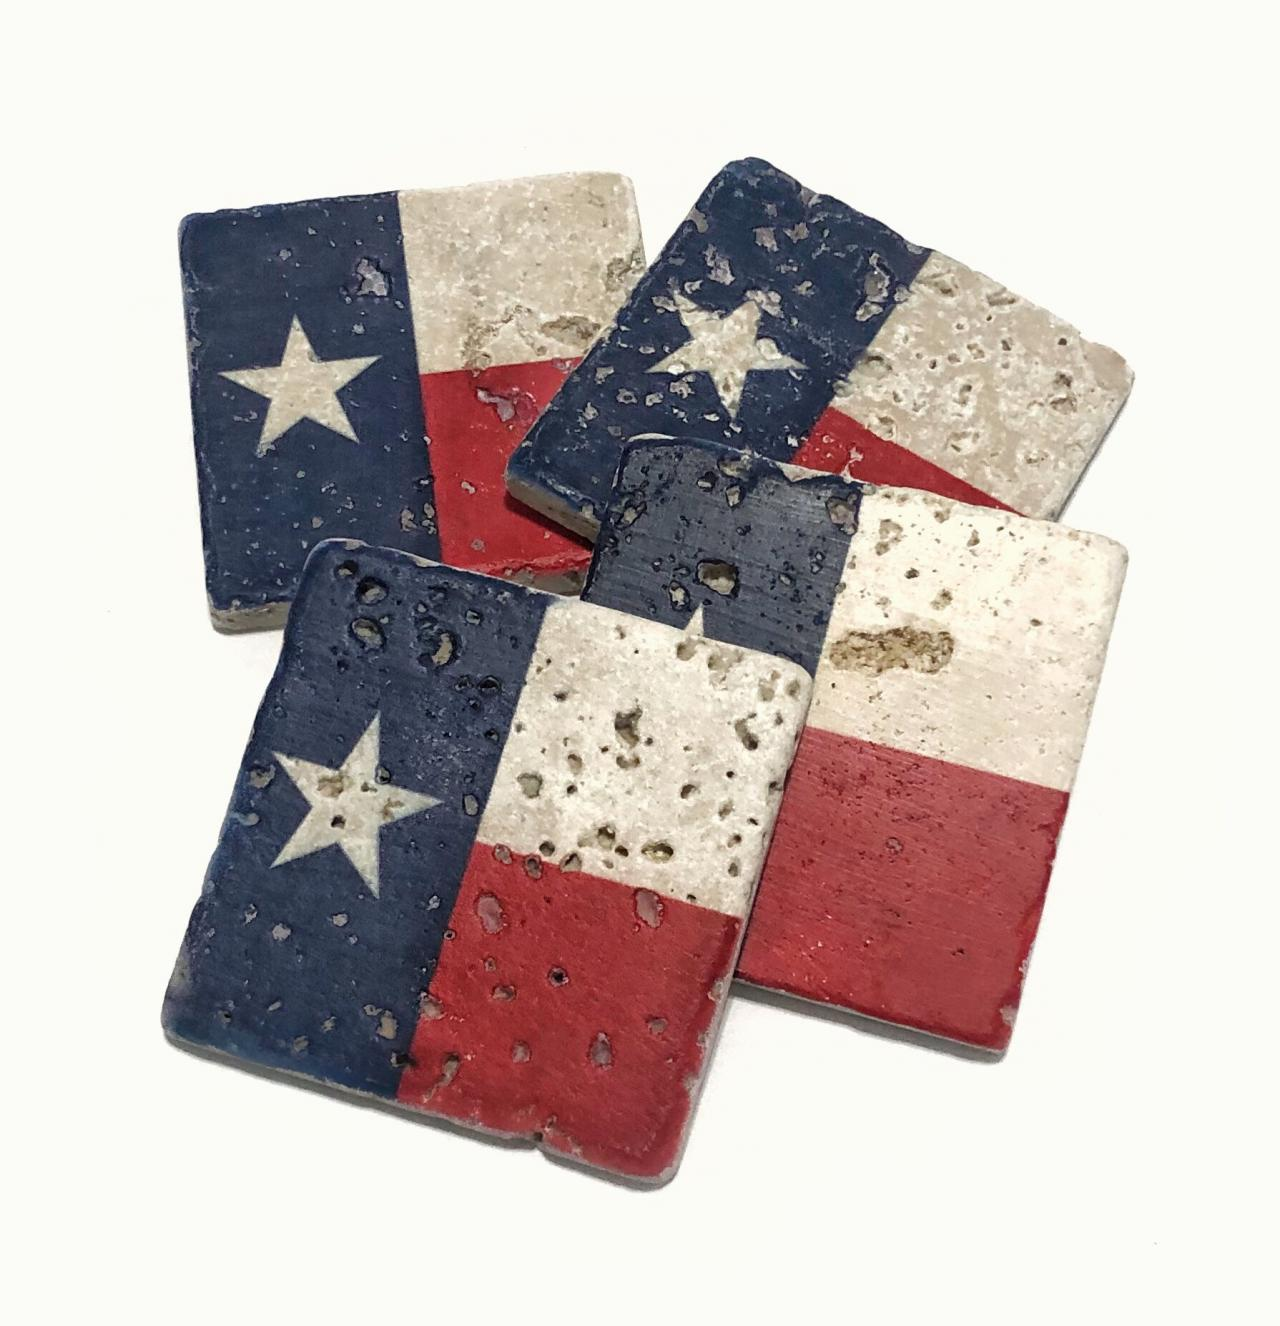 Texas State Flag Premium Natural Stone Coasters, Rustic Home Decor